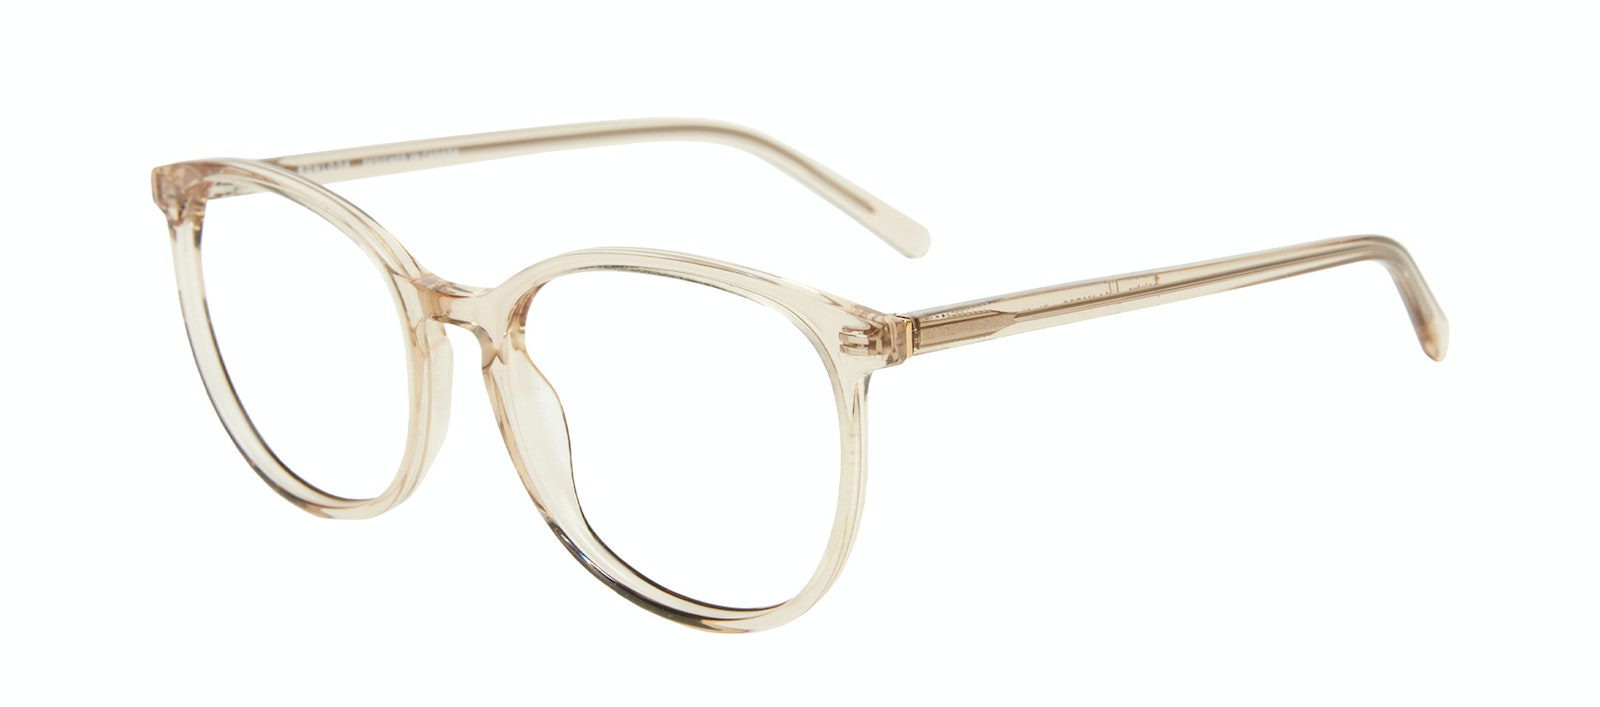 Affordable Fashion Glasses Round Eyeglasses Women Femme Libre L Margo Tilt